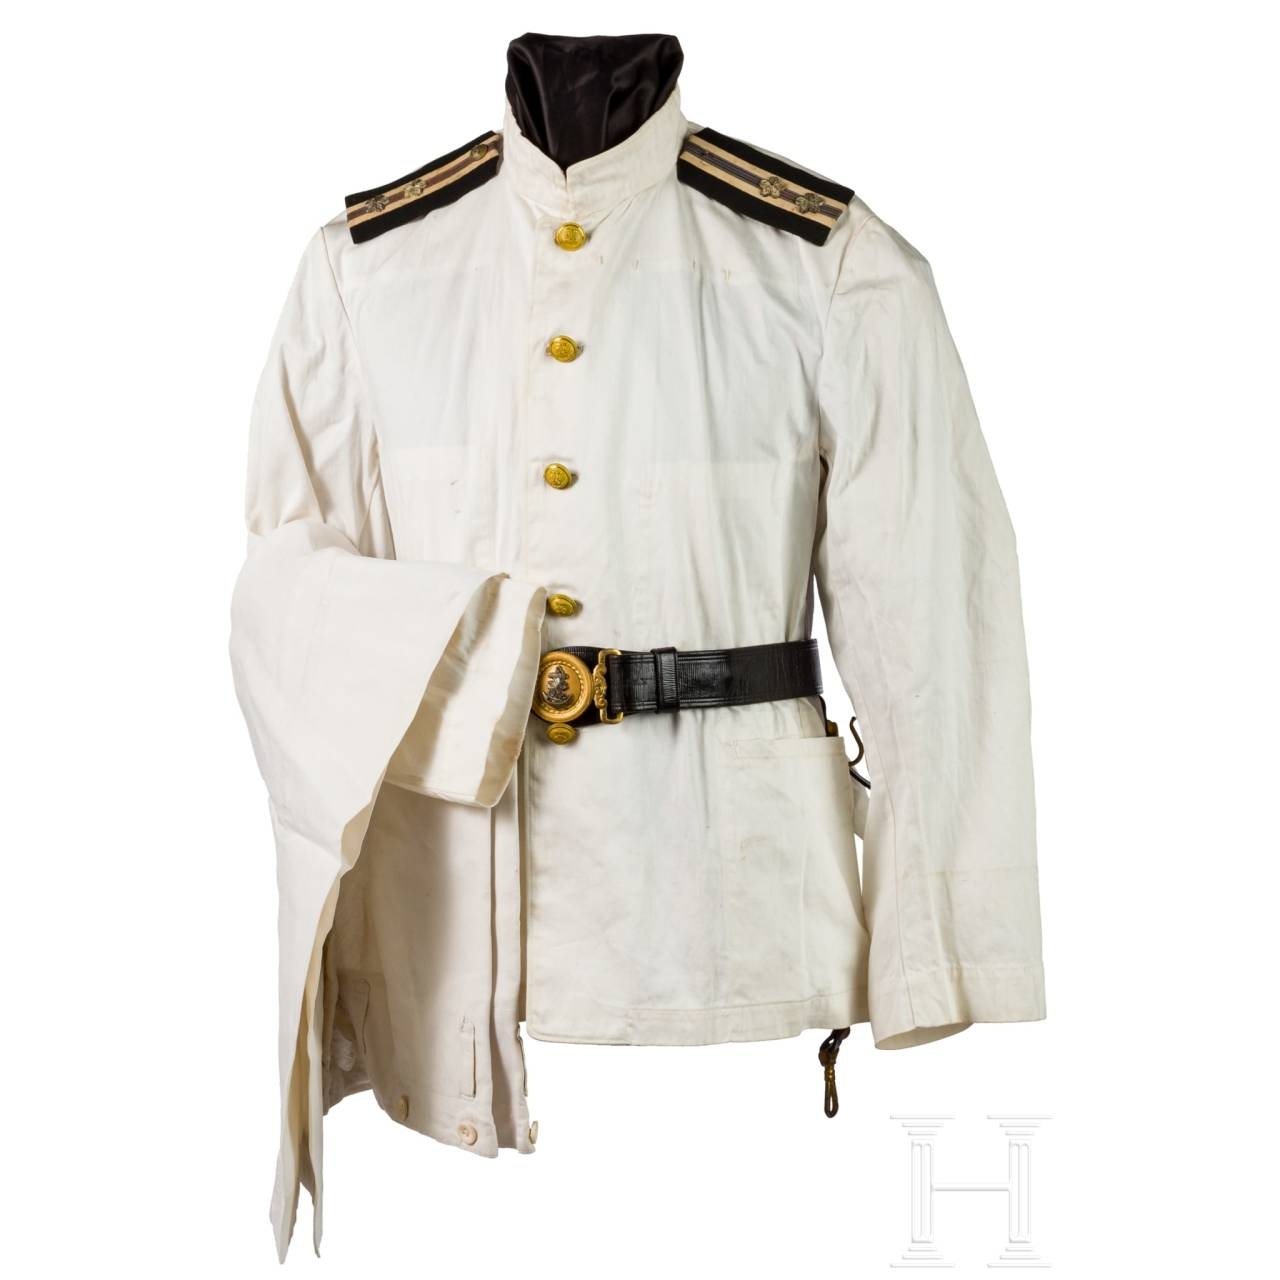 A set comprising uniform and equipment belonging to a World War II naval officer